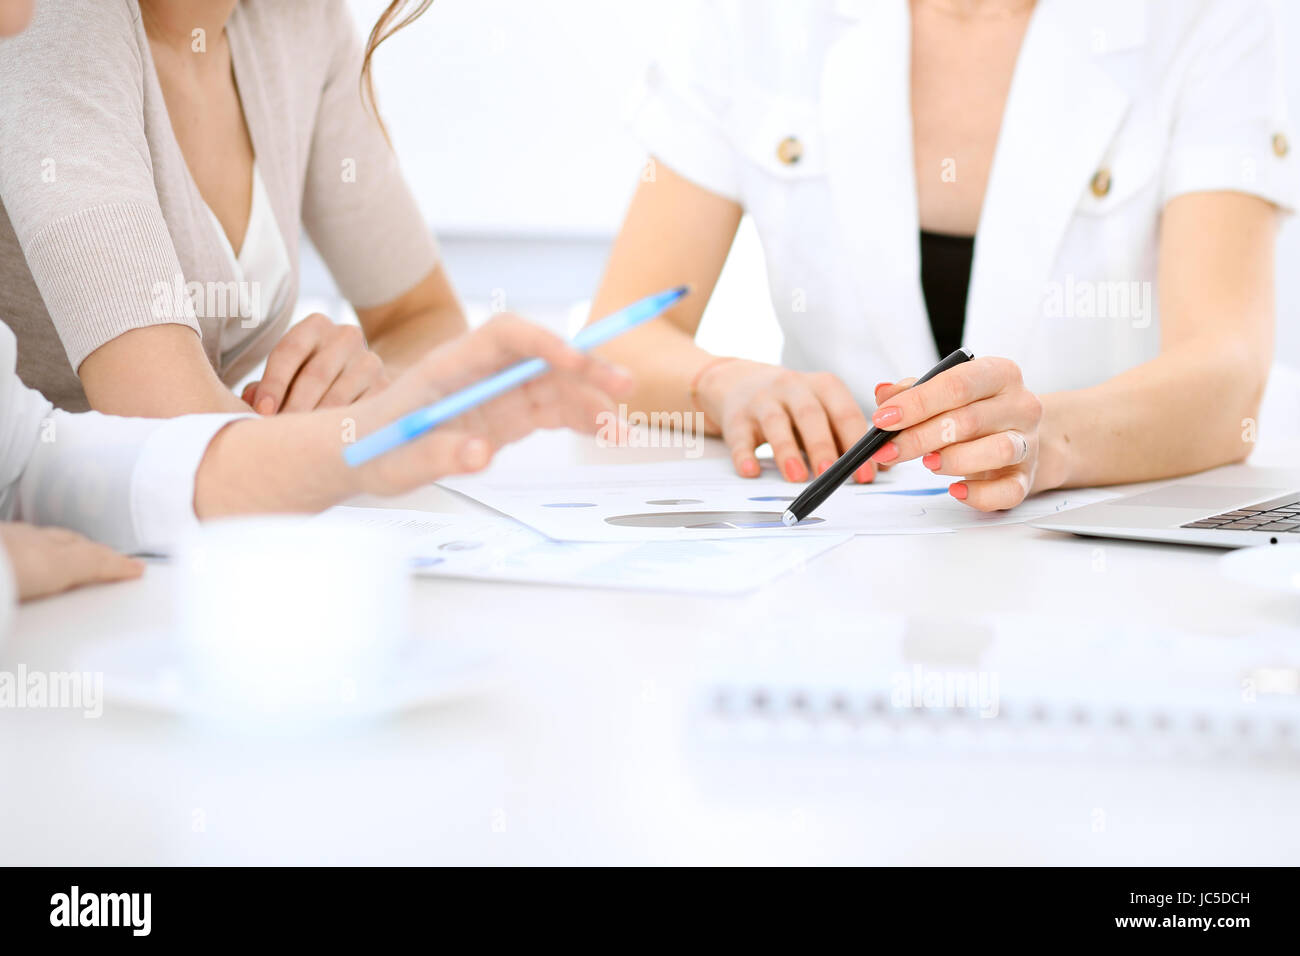 Group of business people, architects or designers at meeting in office - Stock Image